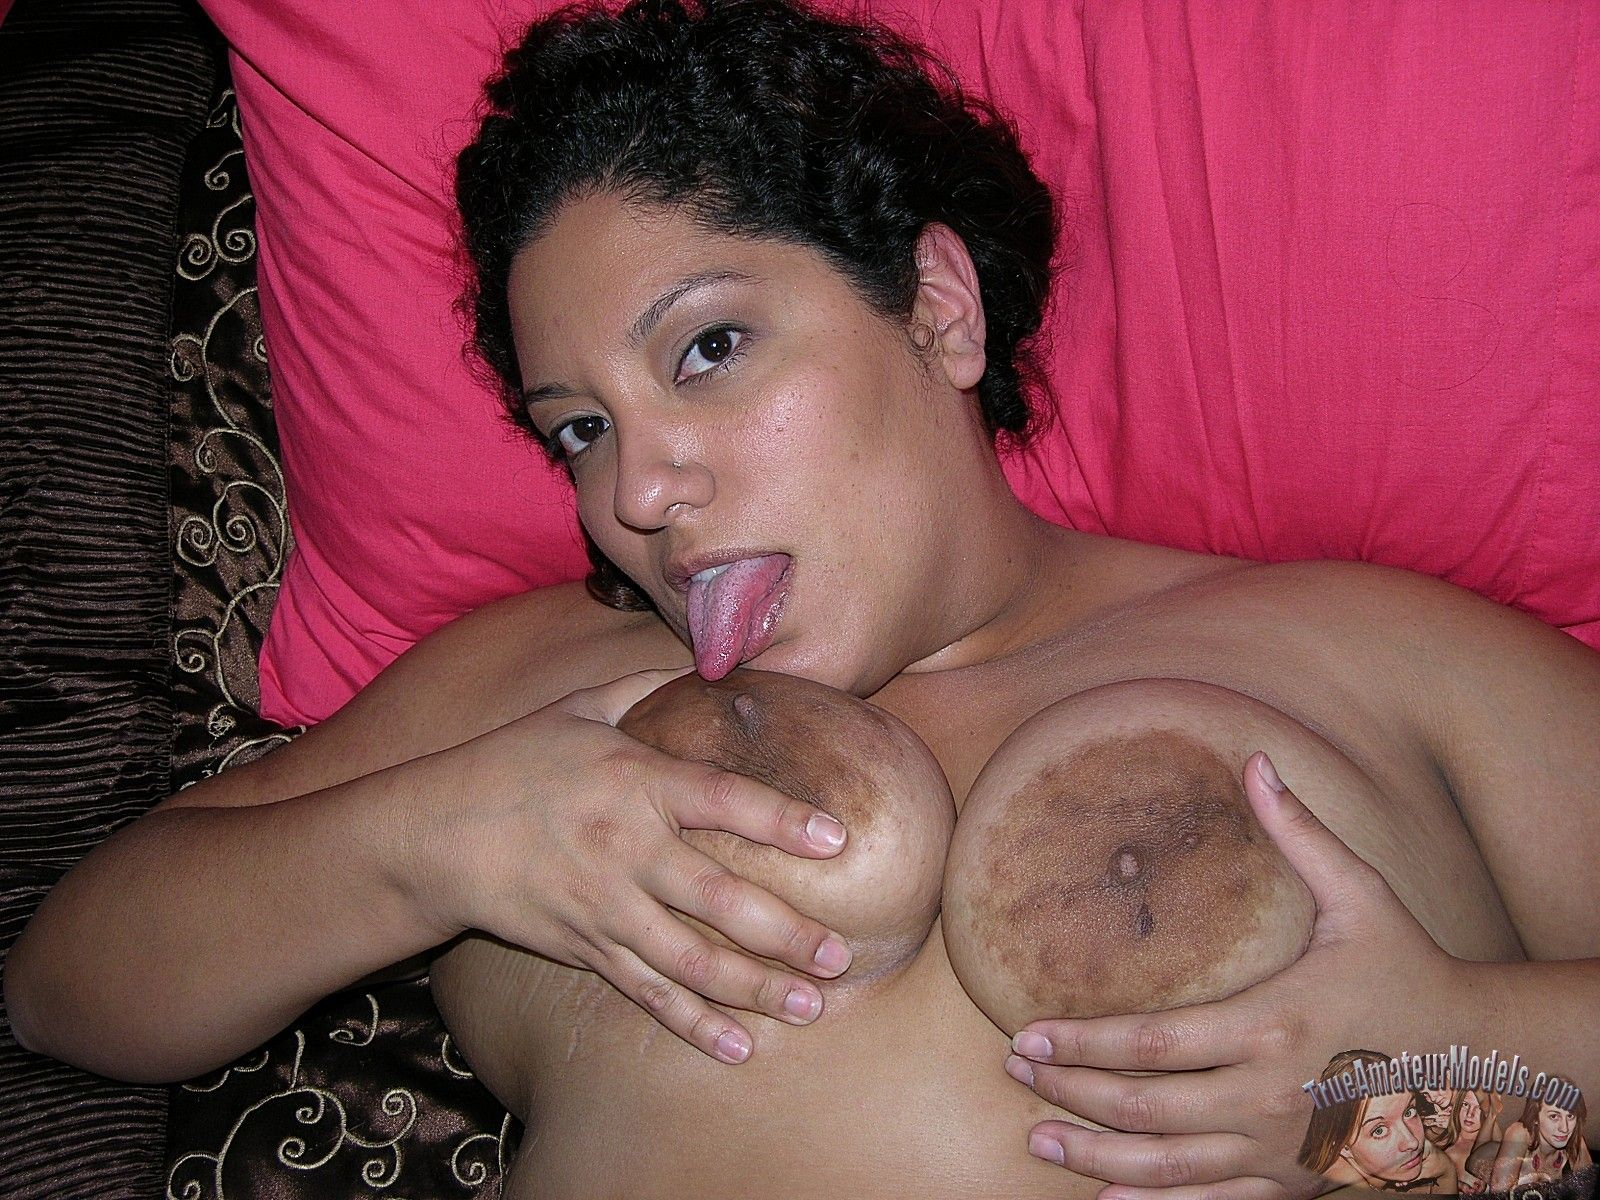 Fucking hot latina bbw nude she